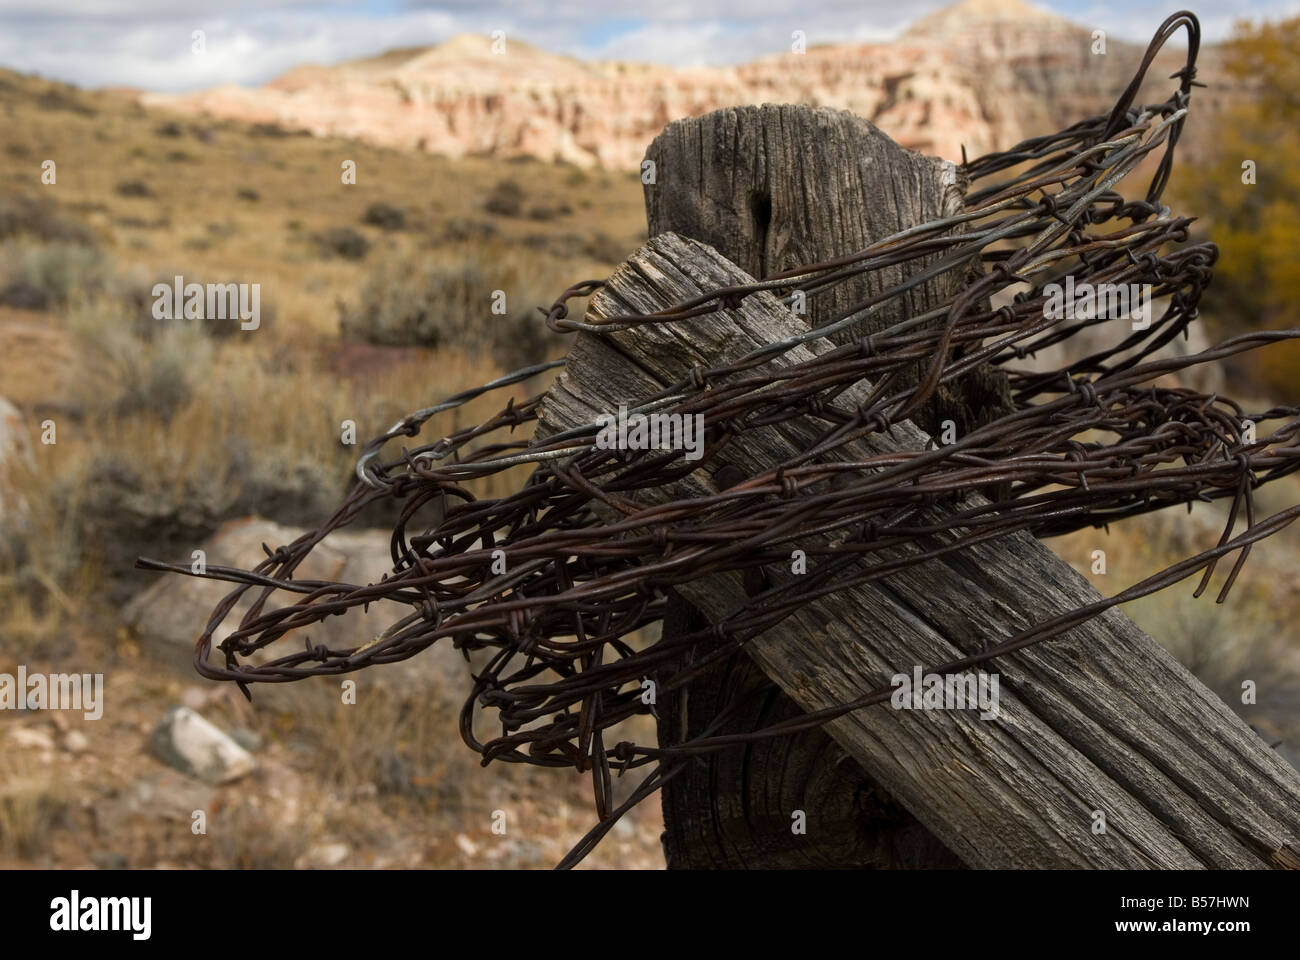 Barb wire. Barbed wire. Dubois, Wyoming, USA - Stock Image